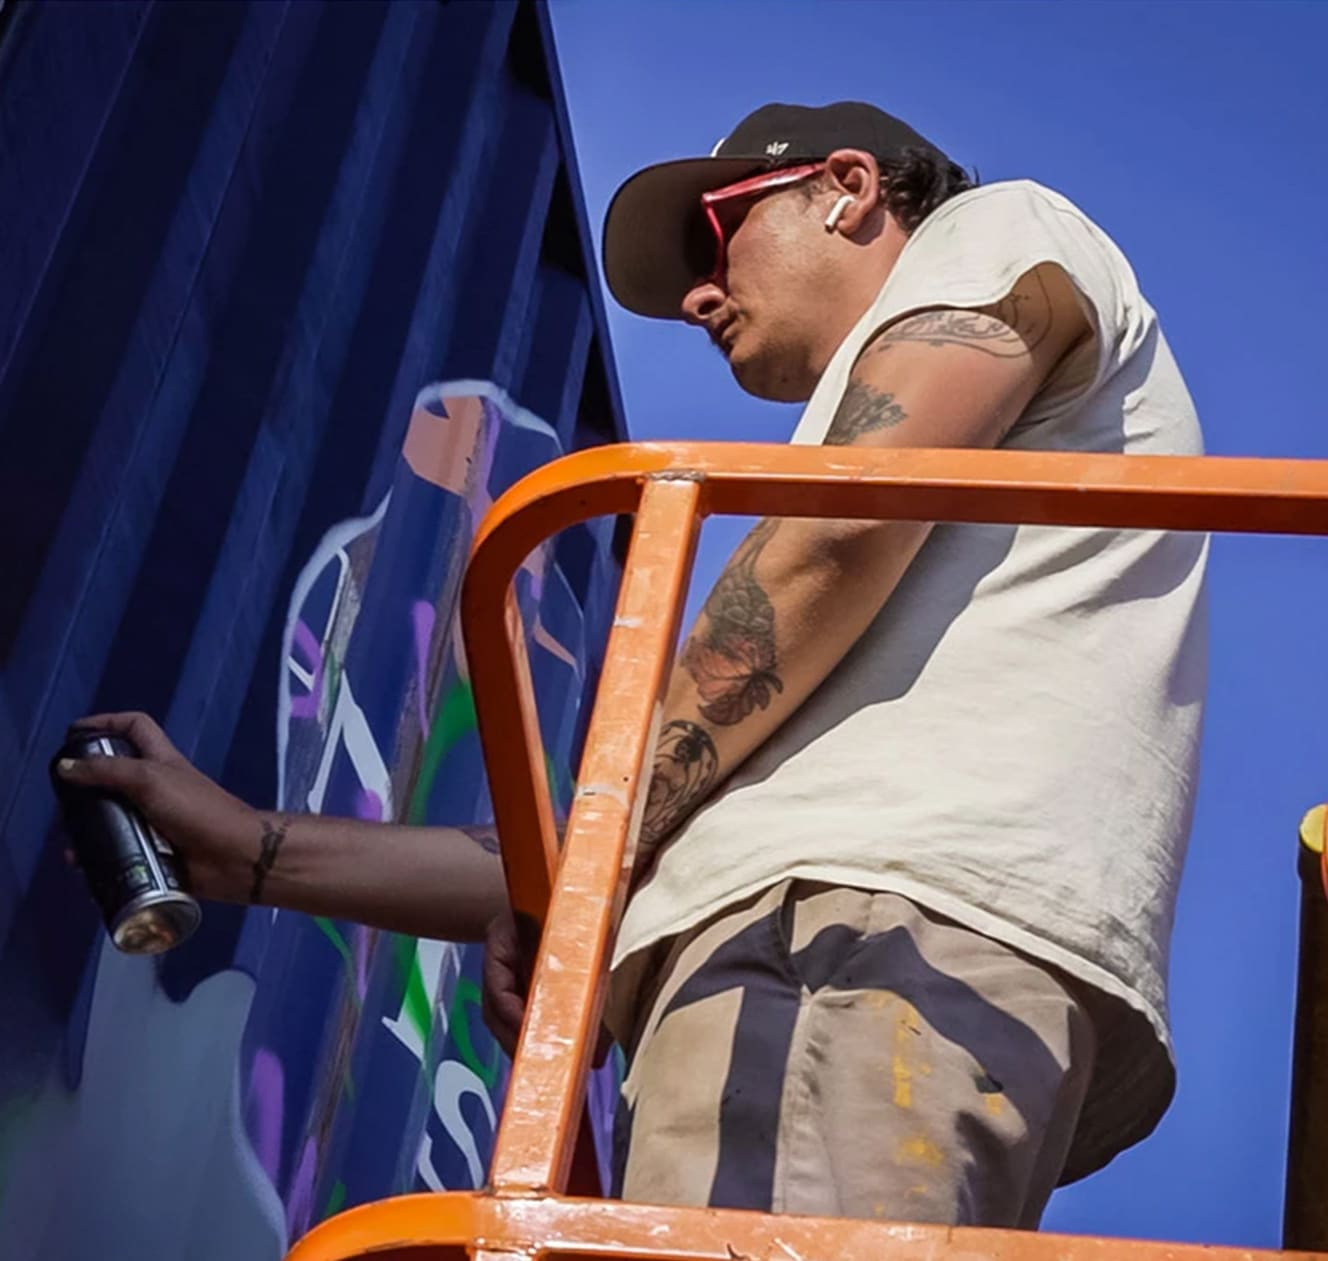 close up of mural artist spray painting a shipping container